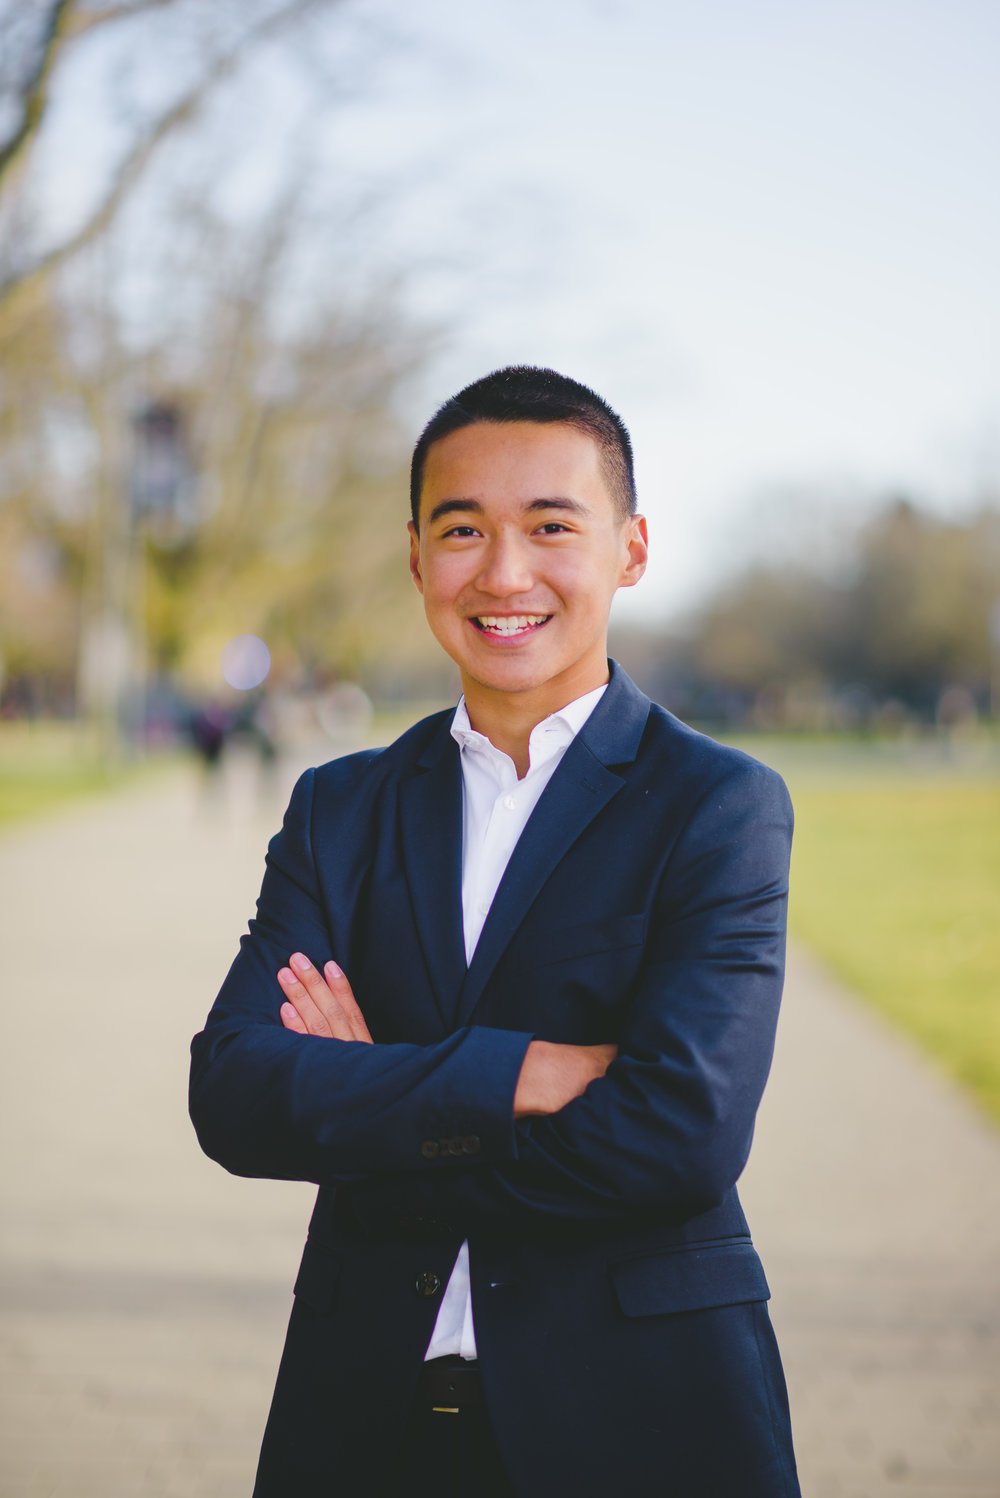 Ryan Wong - My name is Ryan Wong, I am a Bachelor of International Economics student and I am extremely excited to be running to be your next VSEUS President. This past year I have served in multiple roles on VSEUS, most notably as Associate Vice-President Administration. I have served on committees across different portfolios, and Chaired the Merchandise Committee and Recognized Clubs Committee. I have had the privilege of working with such a talented executive team this year and if elected, I look forward to continuing the good work that the team has accomplished.My platform is based upon 3 pillars:1. Increase Communication - Enhance VSEUS communication internally to create a more productive working environment and work with the VP Admin to ensure the Code of Procedures reflects this.2. Accessibility and Engagement - Make VSEUS more accessible and engaged within the Econ community and also work with the AMS Rep to be more engaged with the AMS and broader UBC community.3. Brand - Improve the VSEUS brand and image to create a larger presence within the VSE and university.I am eager to get to work for you all and just remember a Vote for Wong is never wrong!